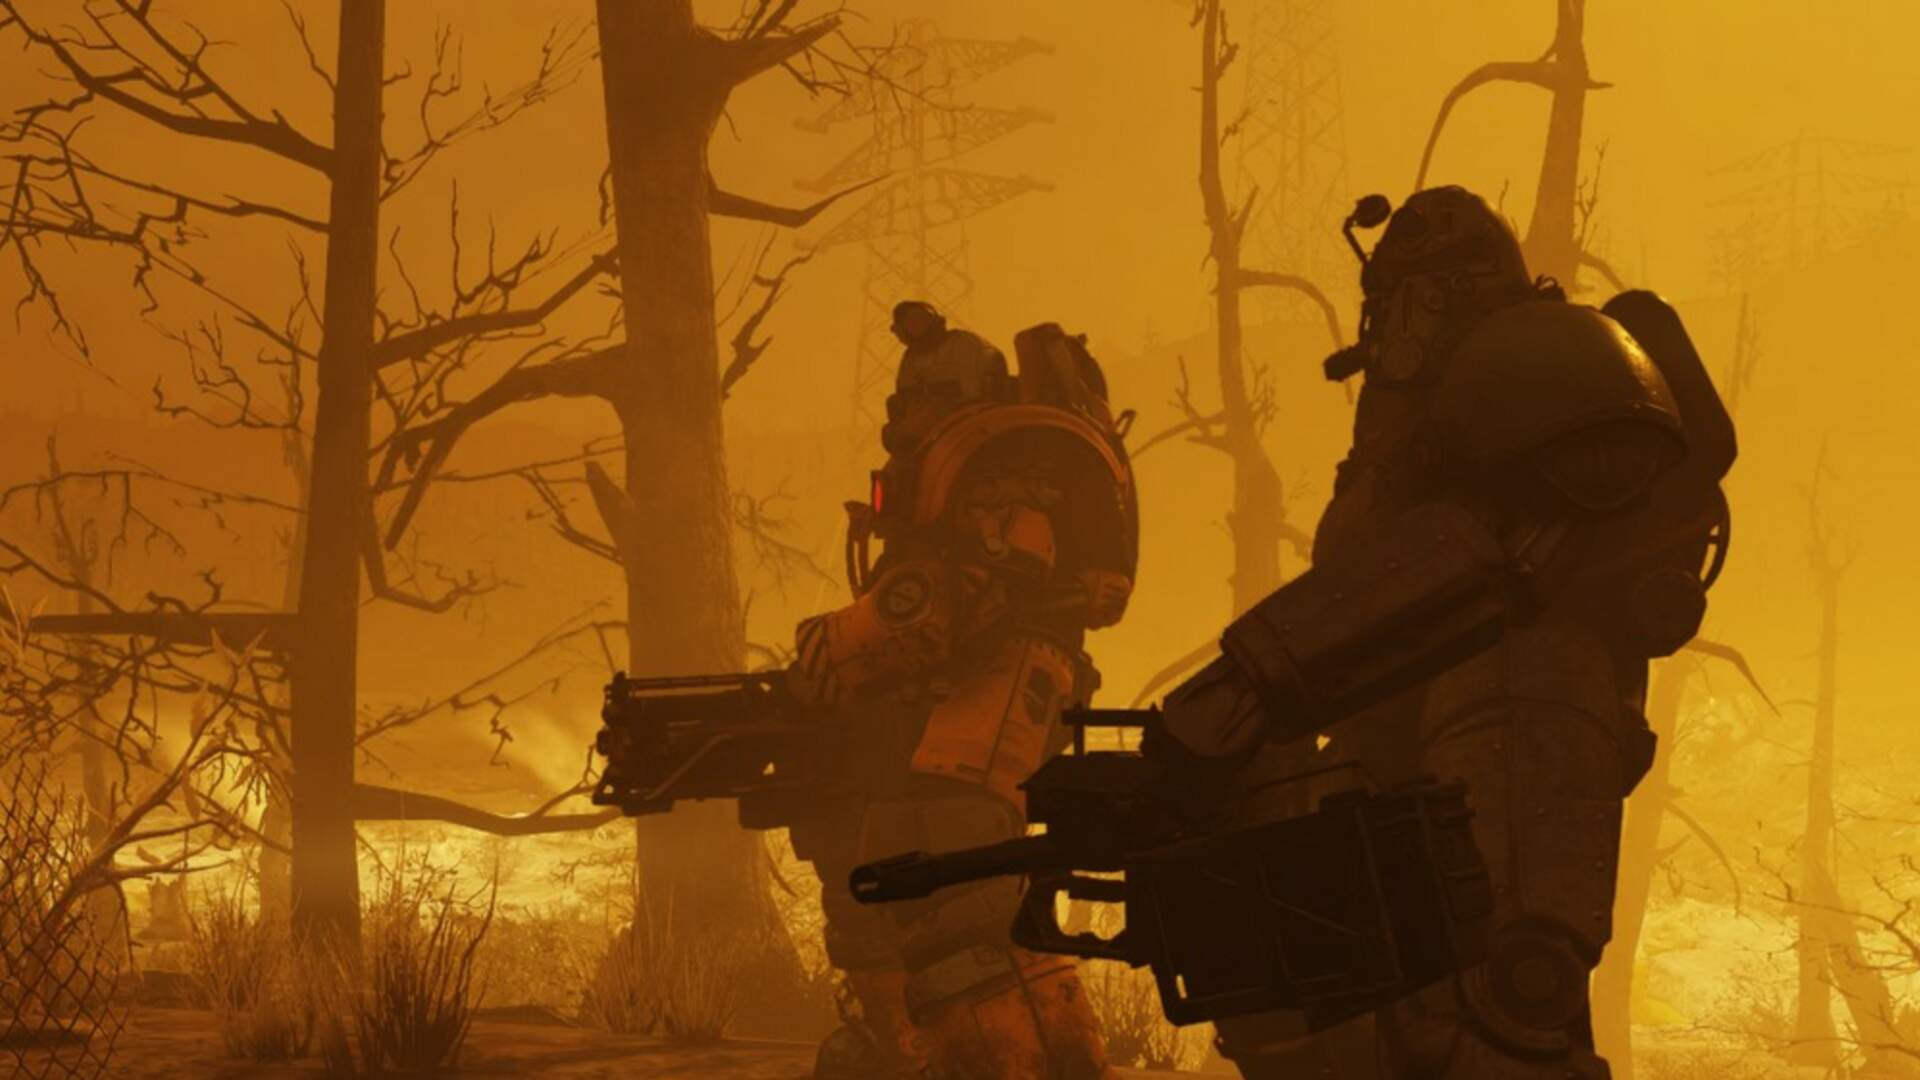 Fallout 76 Should be a Cautionary Tale for Publishers